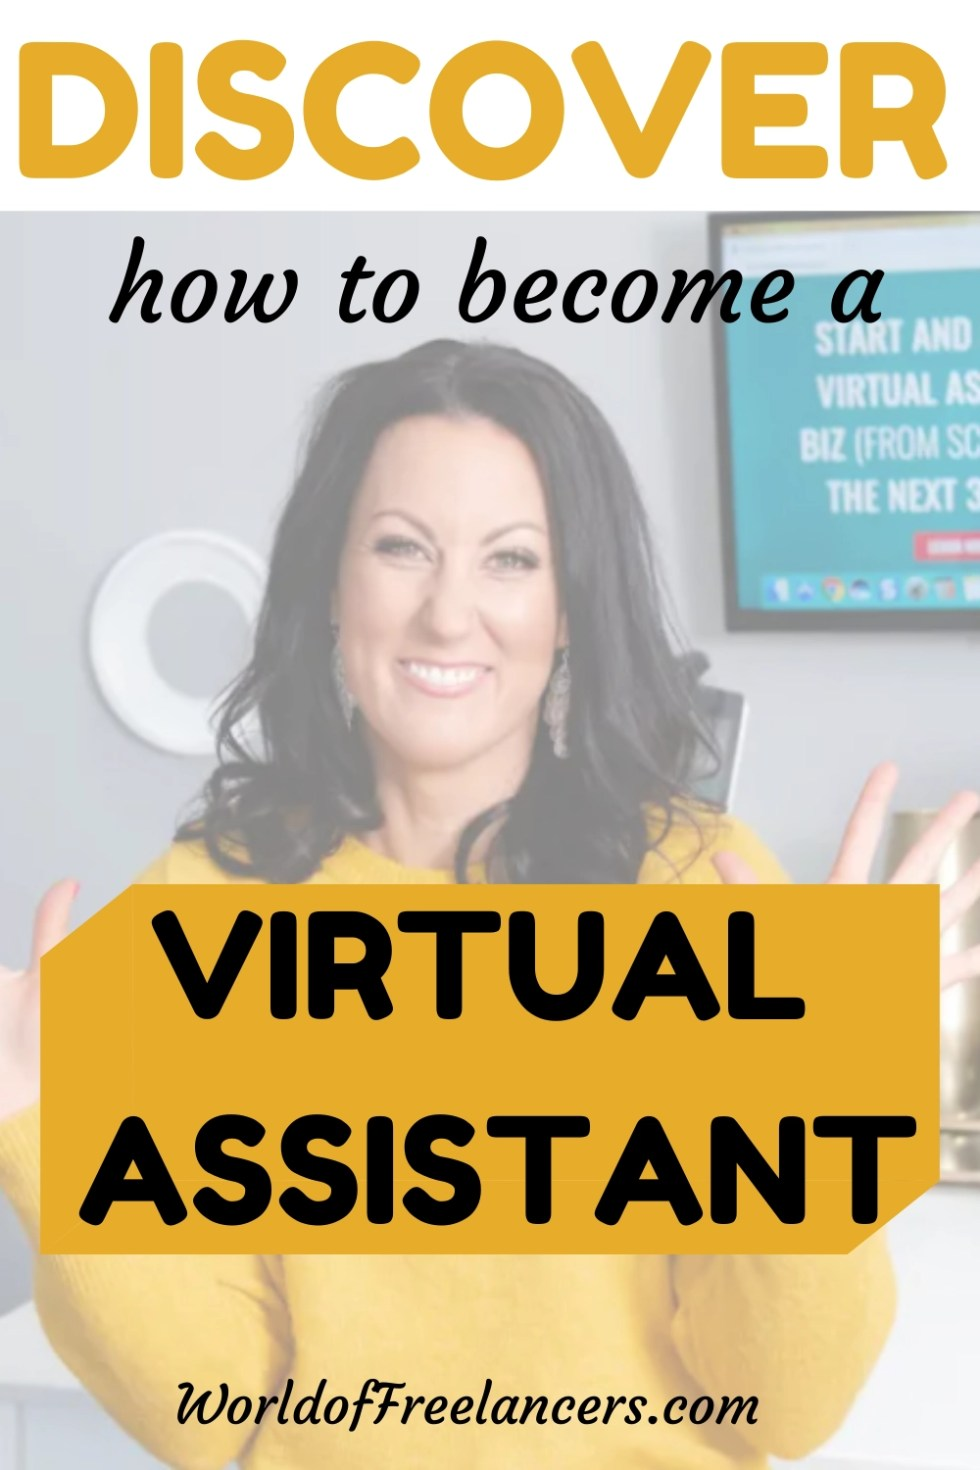 Discover how to become a virtual assistant